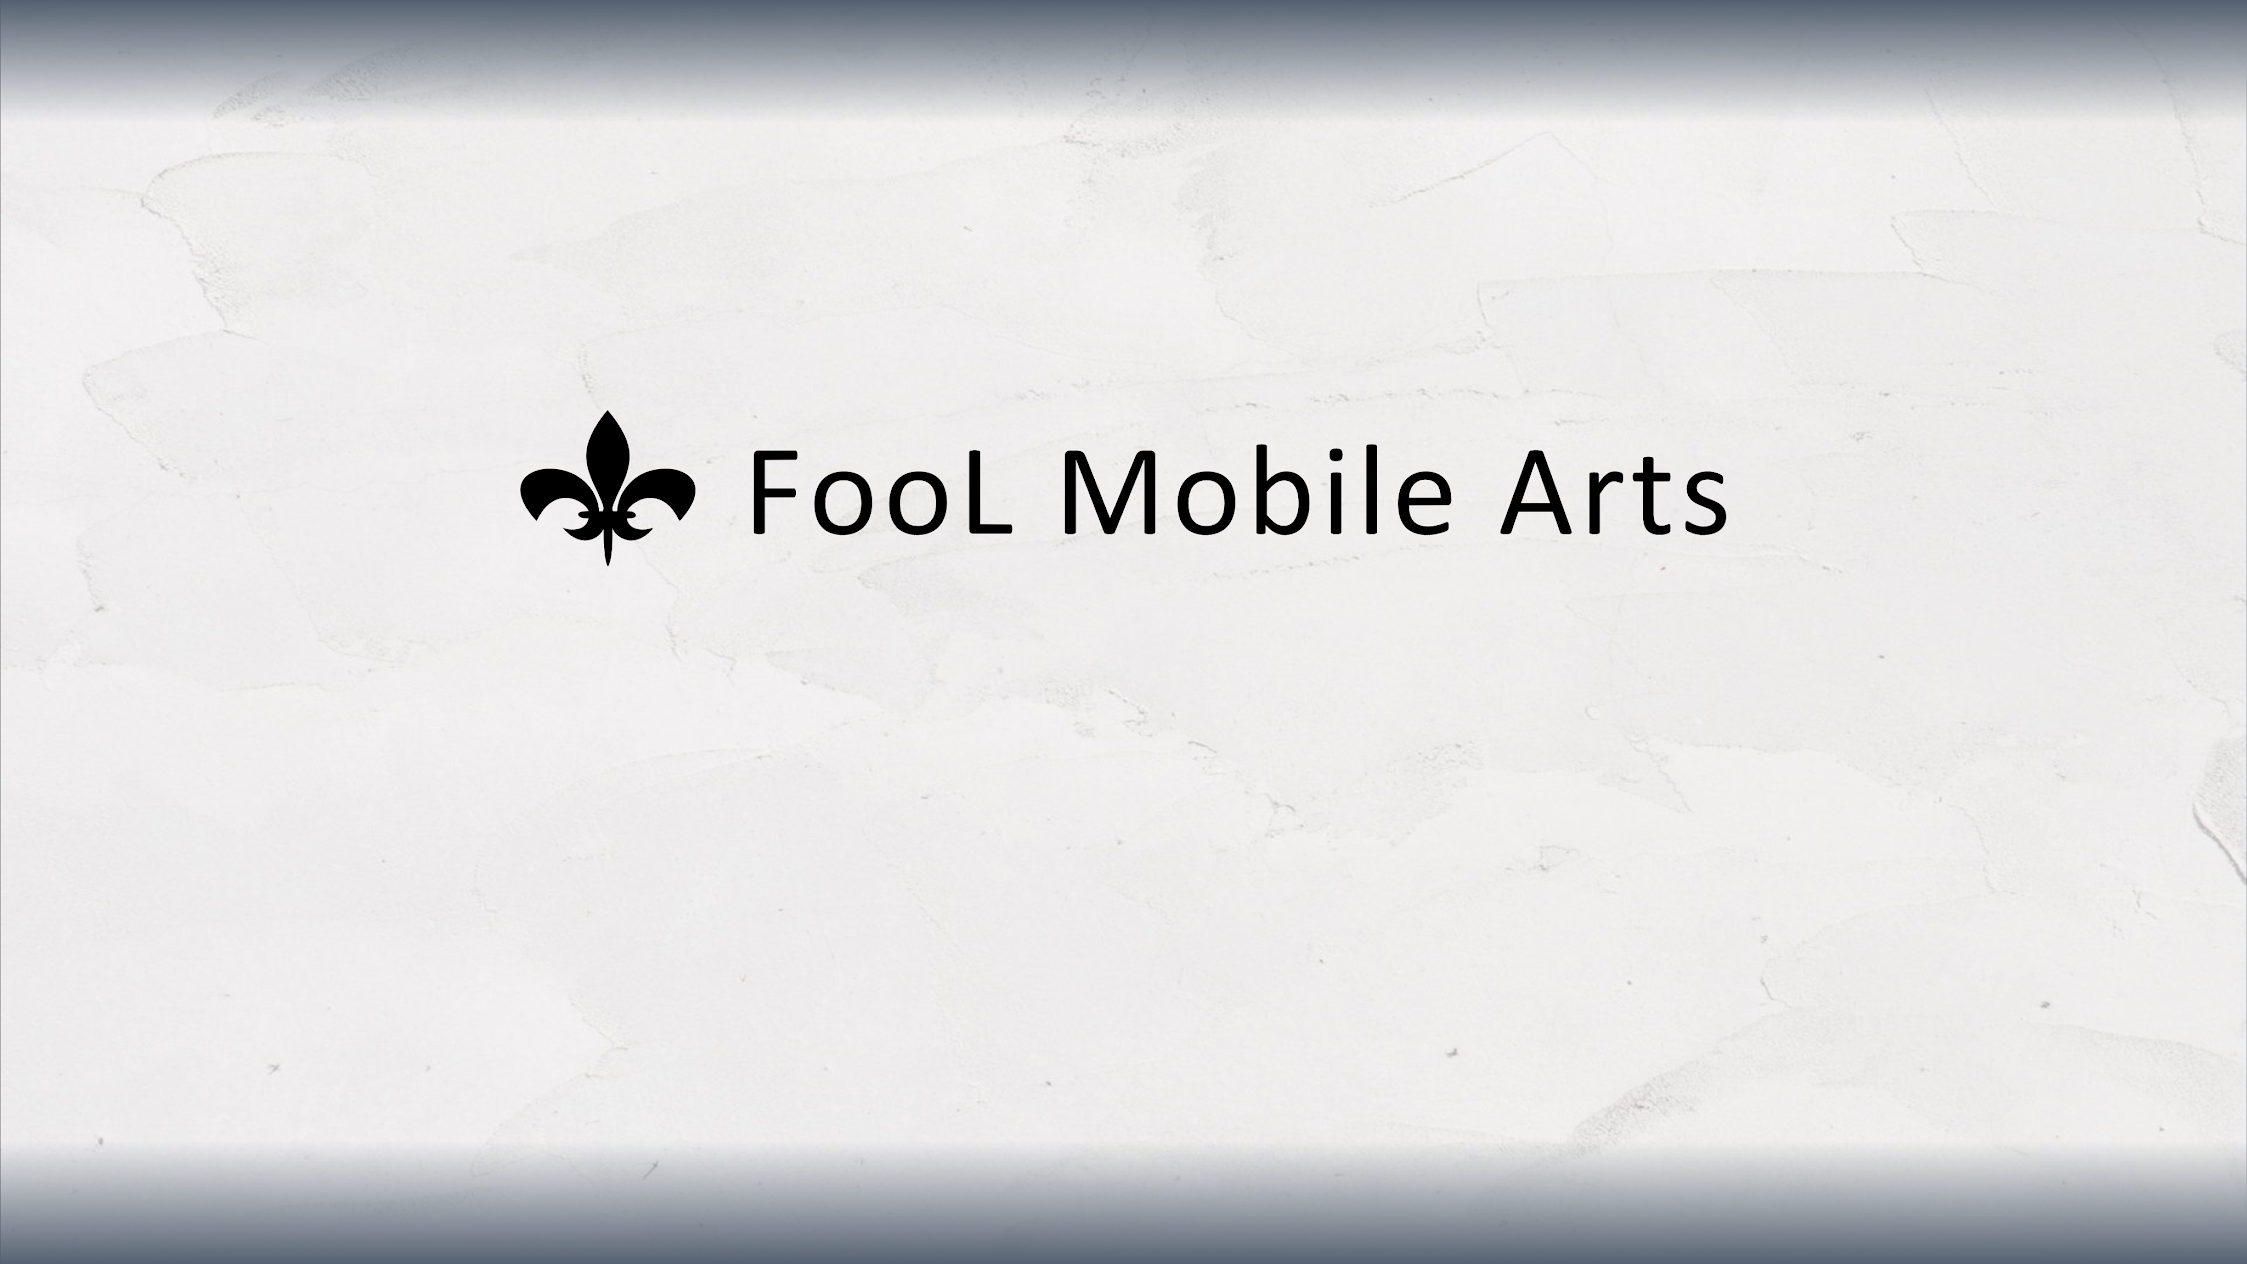 FooL Mobile Arts